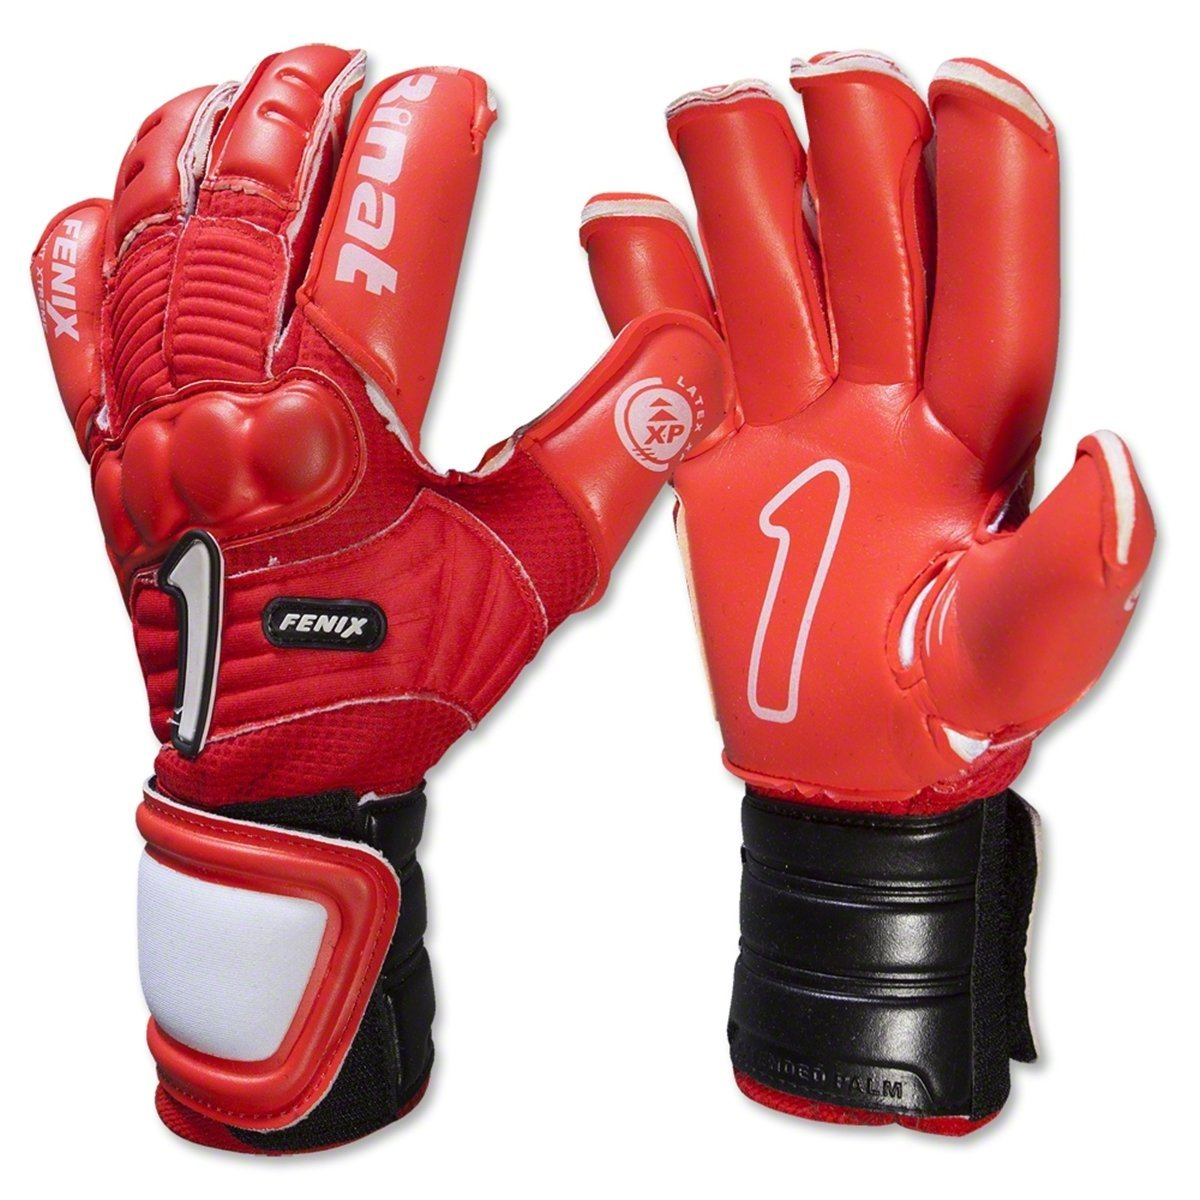 e60a6730454 Get Quotations · Rinat Soccer Goalkeeper Gloves  Rinat Fenix Prof XP